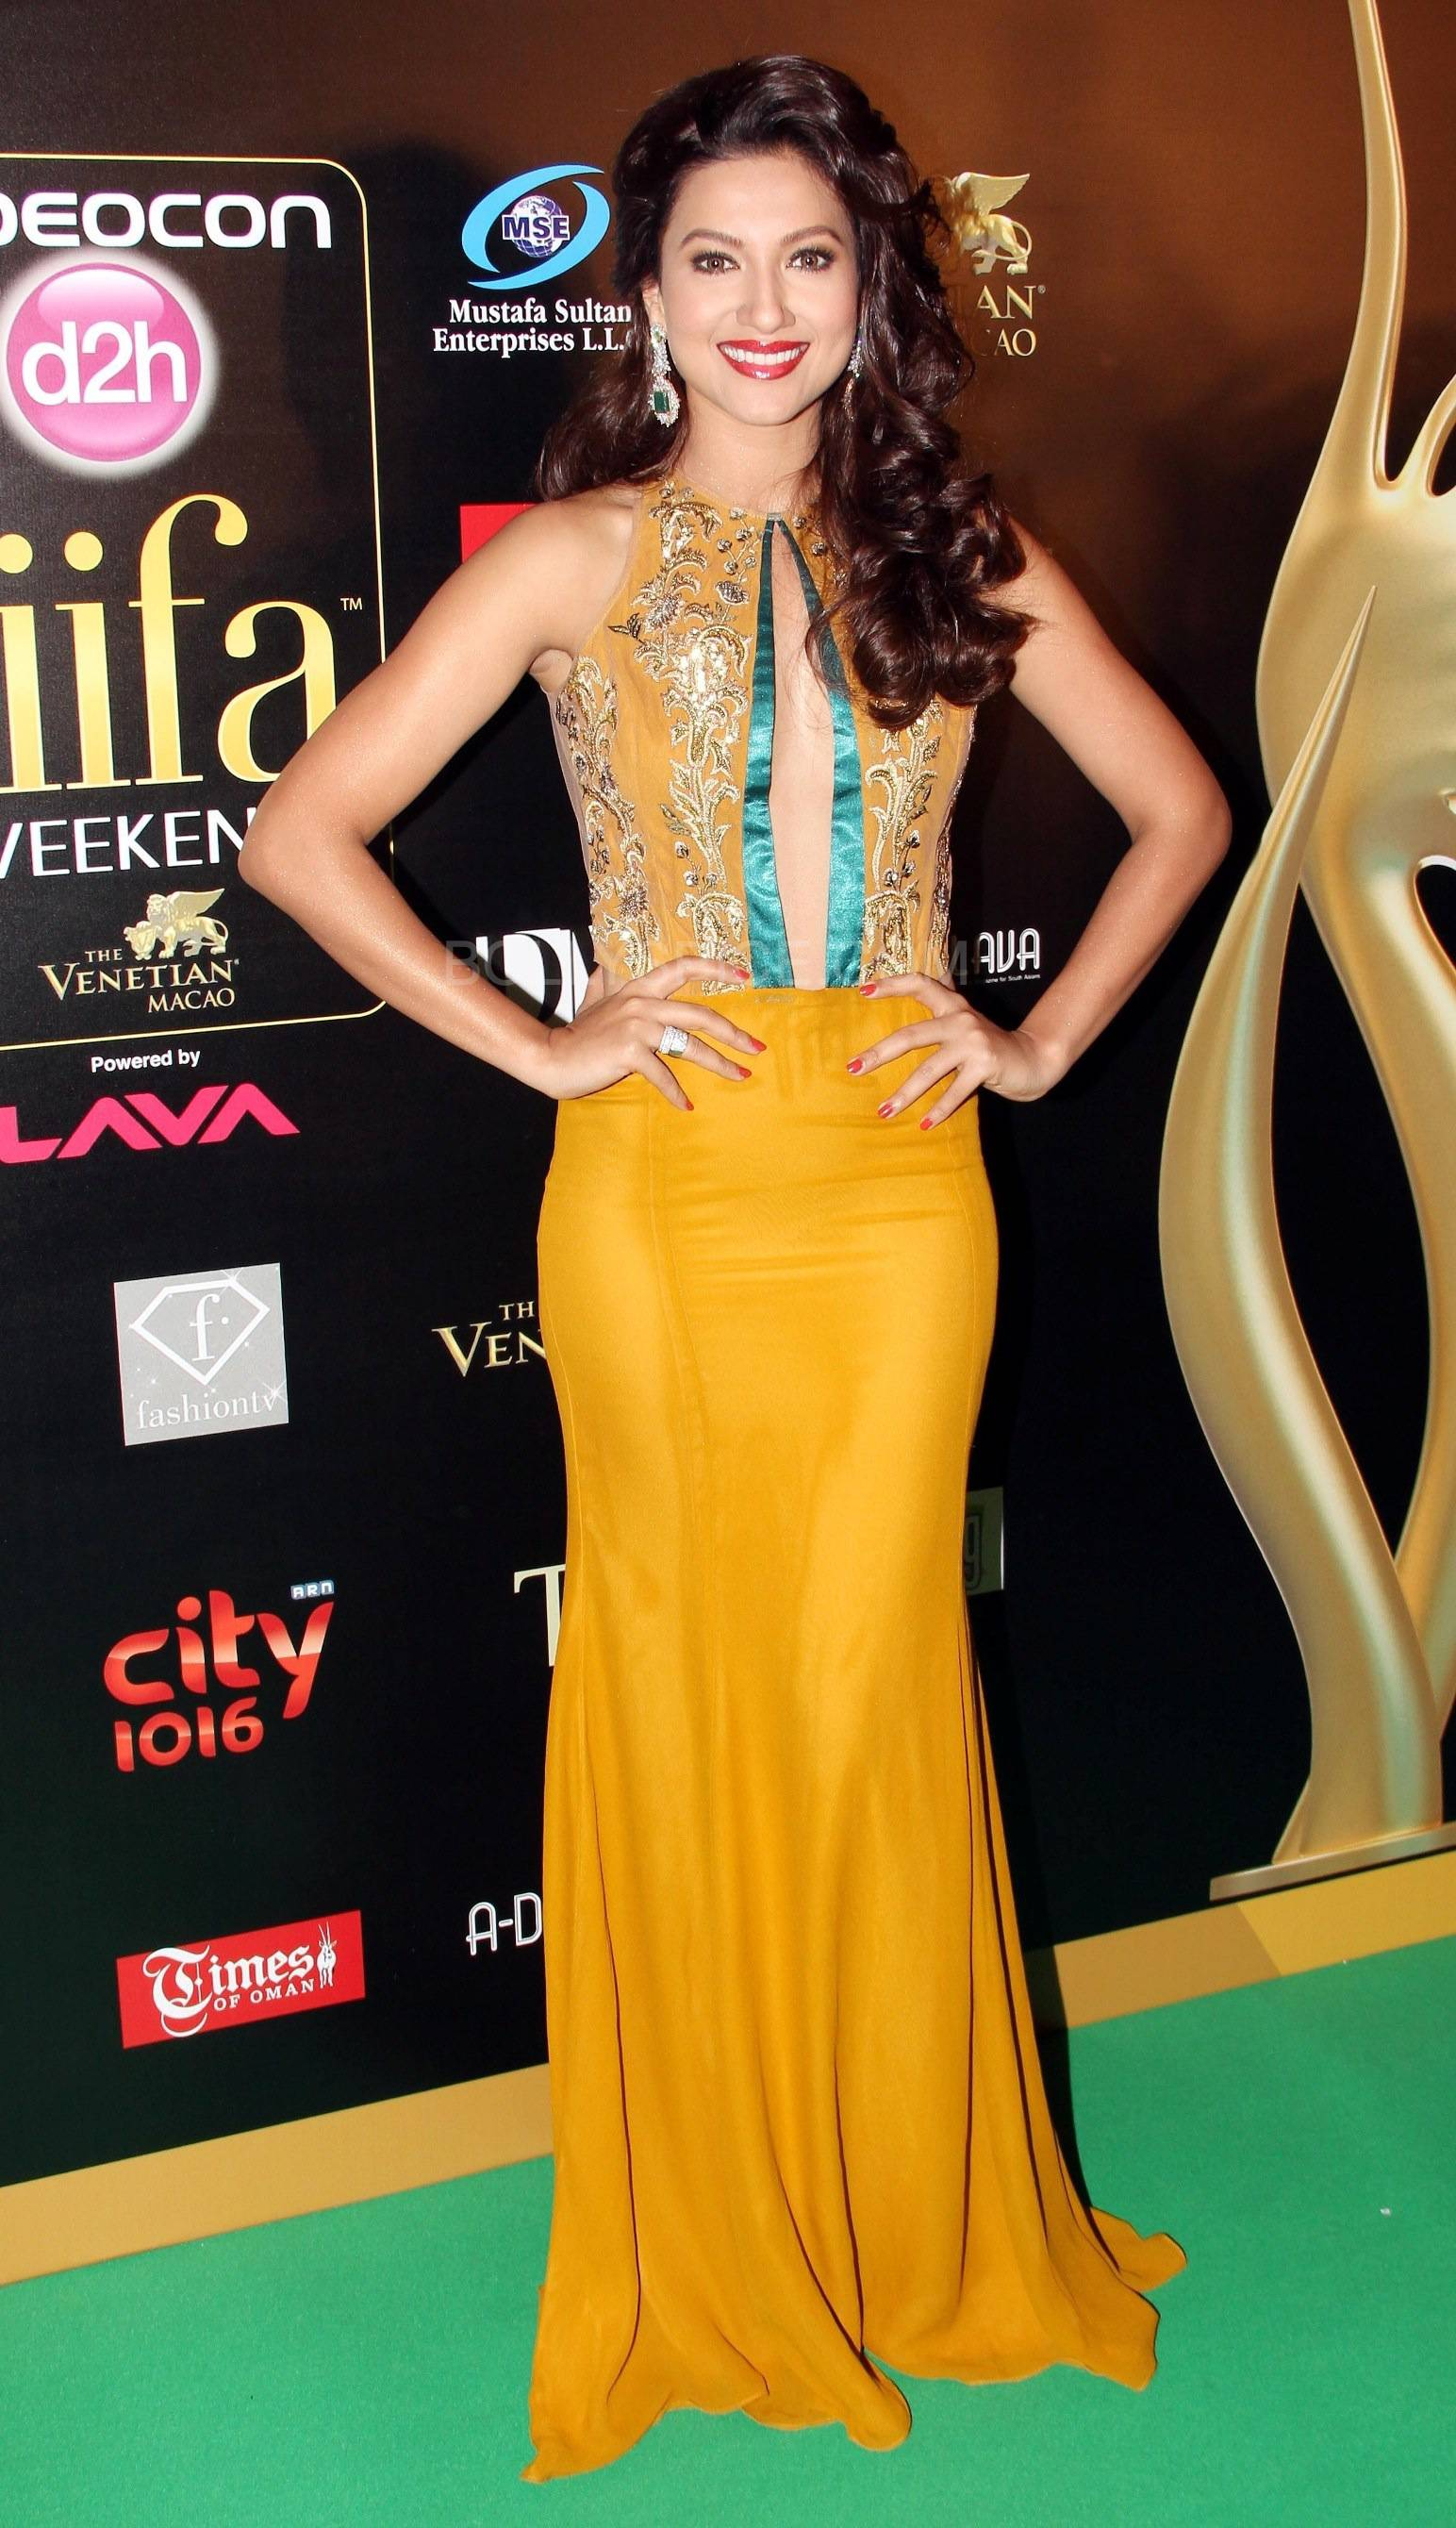 Gauhar Khan at IIFA Rocks Green carpet More from IIFA Rocks including winners and more Green Carpet pics! Pics added!